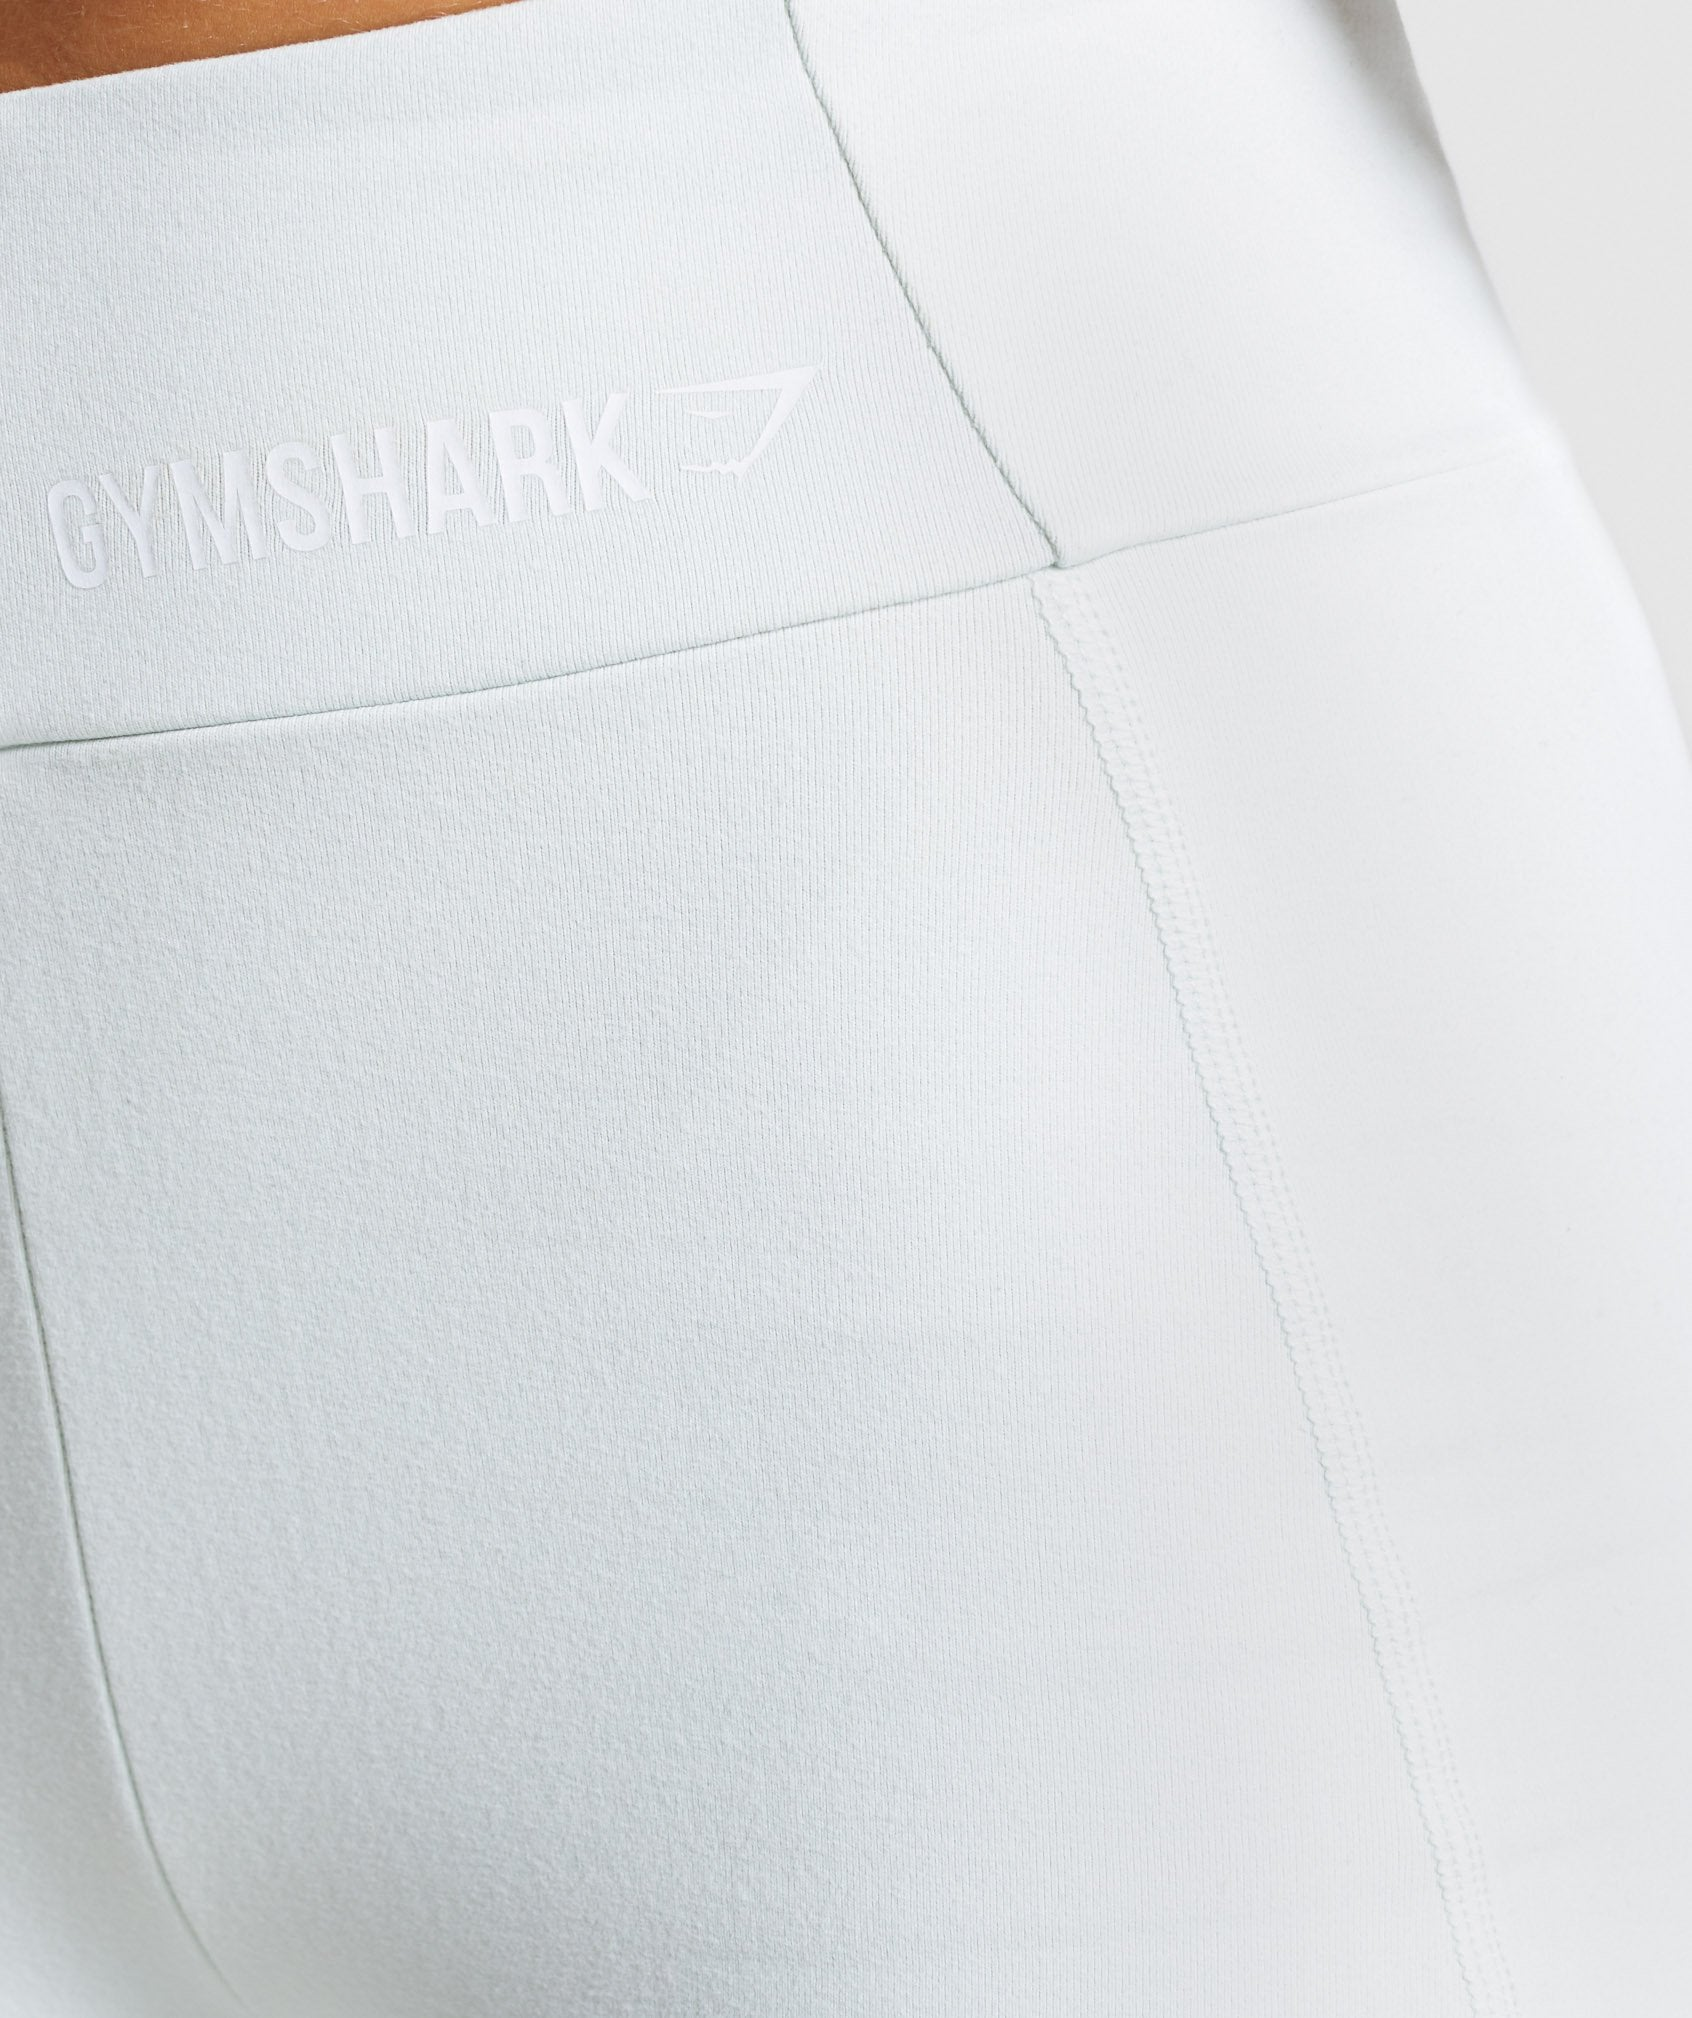 Classier: Buy Gymshark Pastel Cycling Shorts - Sea Foam Green - Gymshark